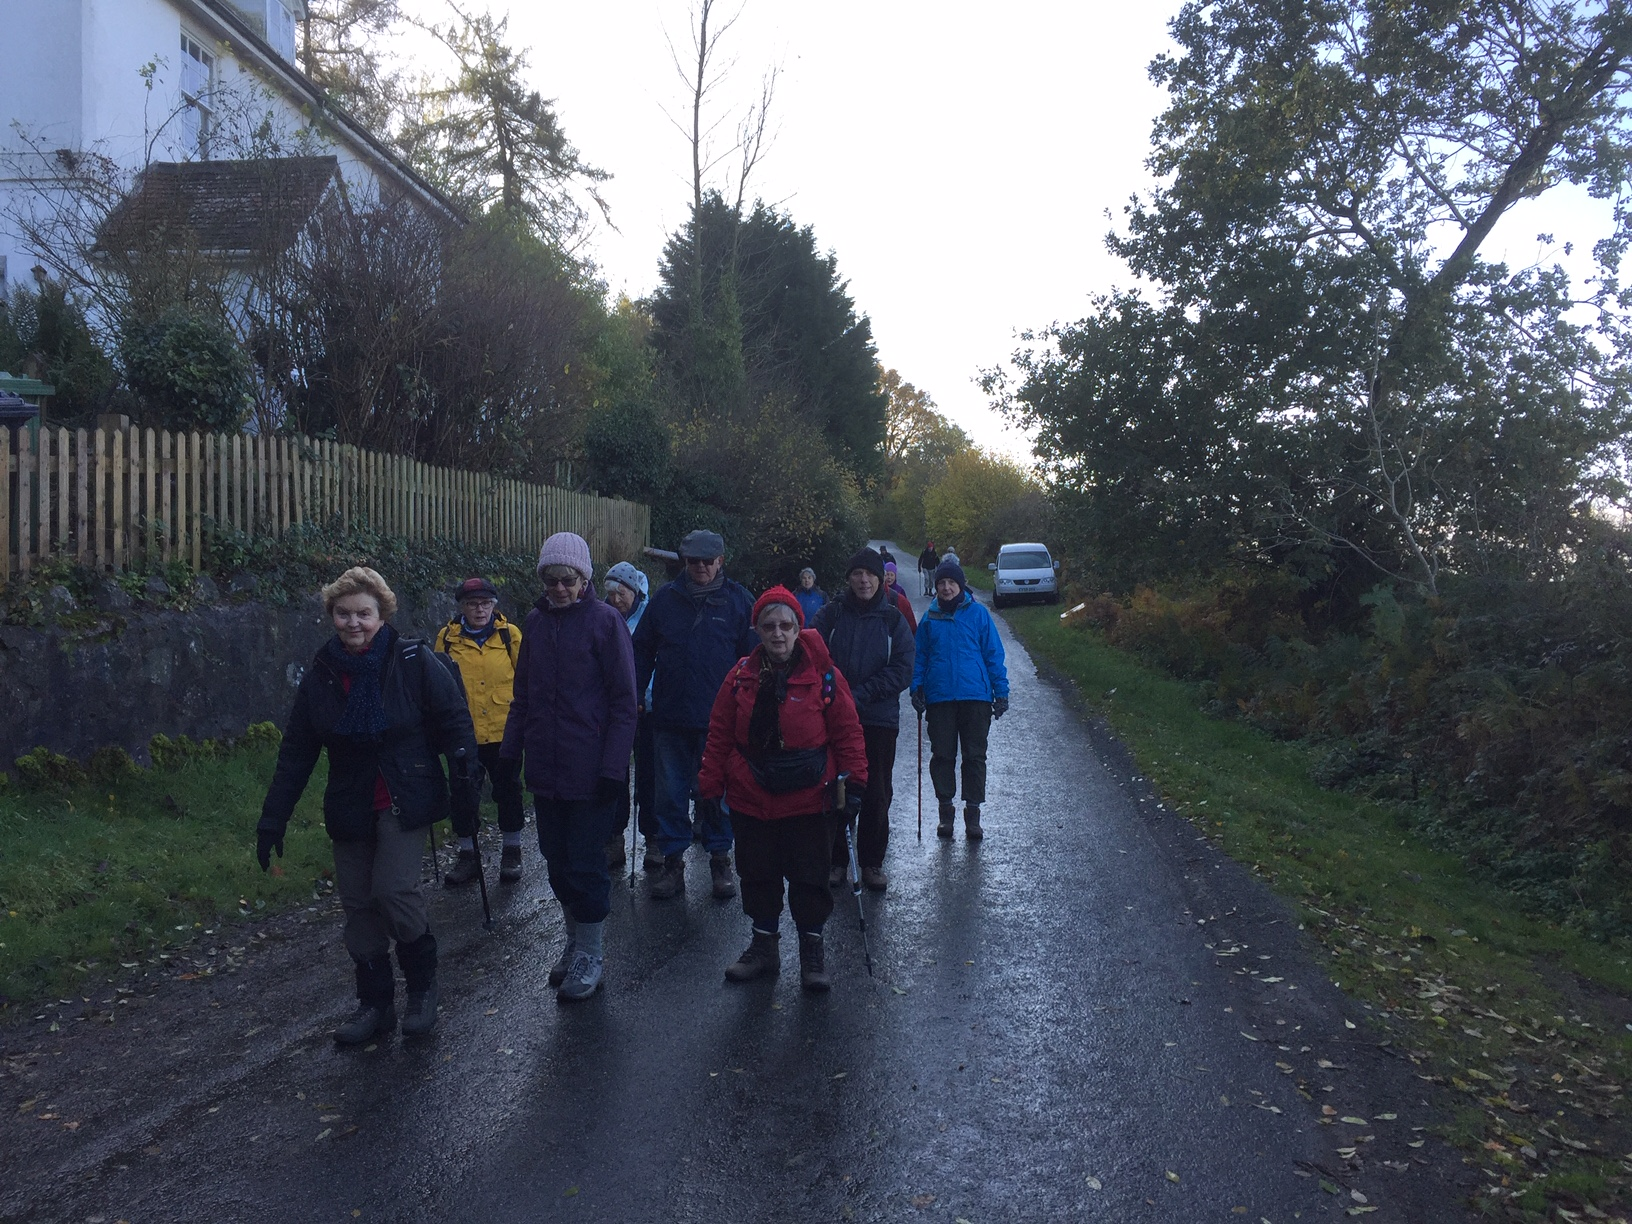 Intrepid Walkers Kettle Sings Nov 2019